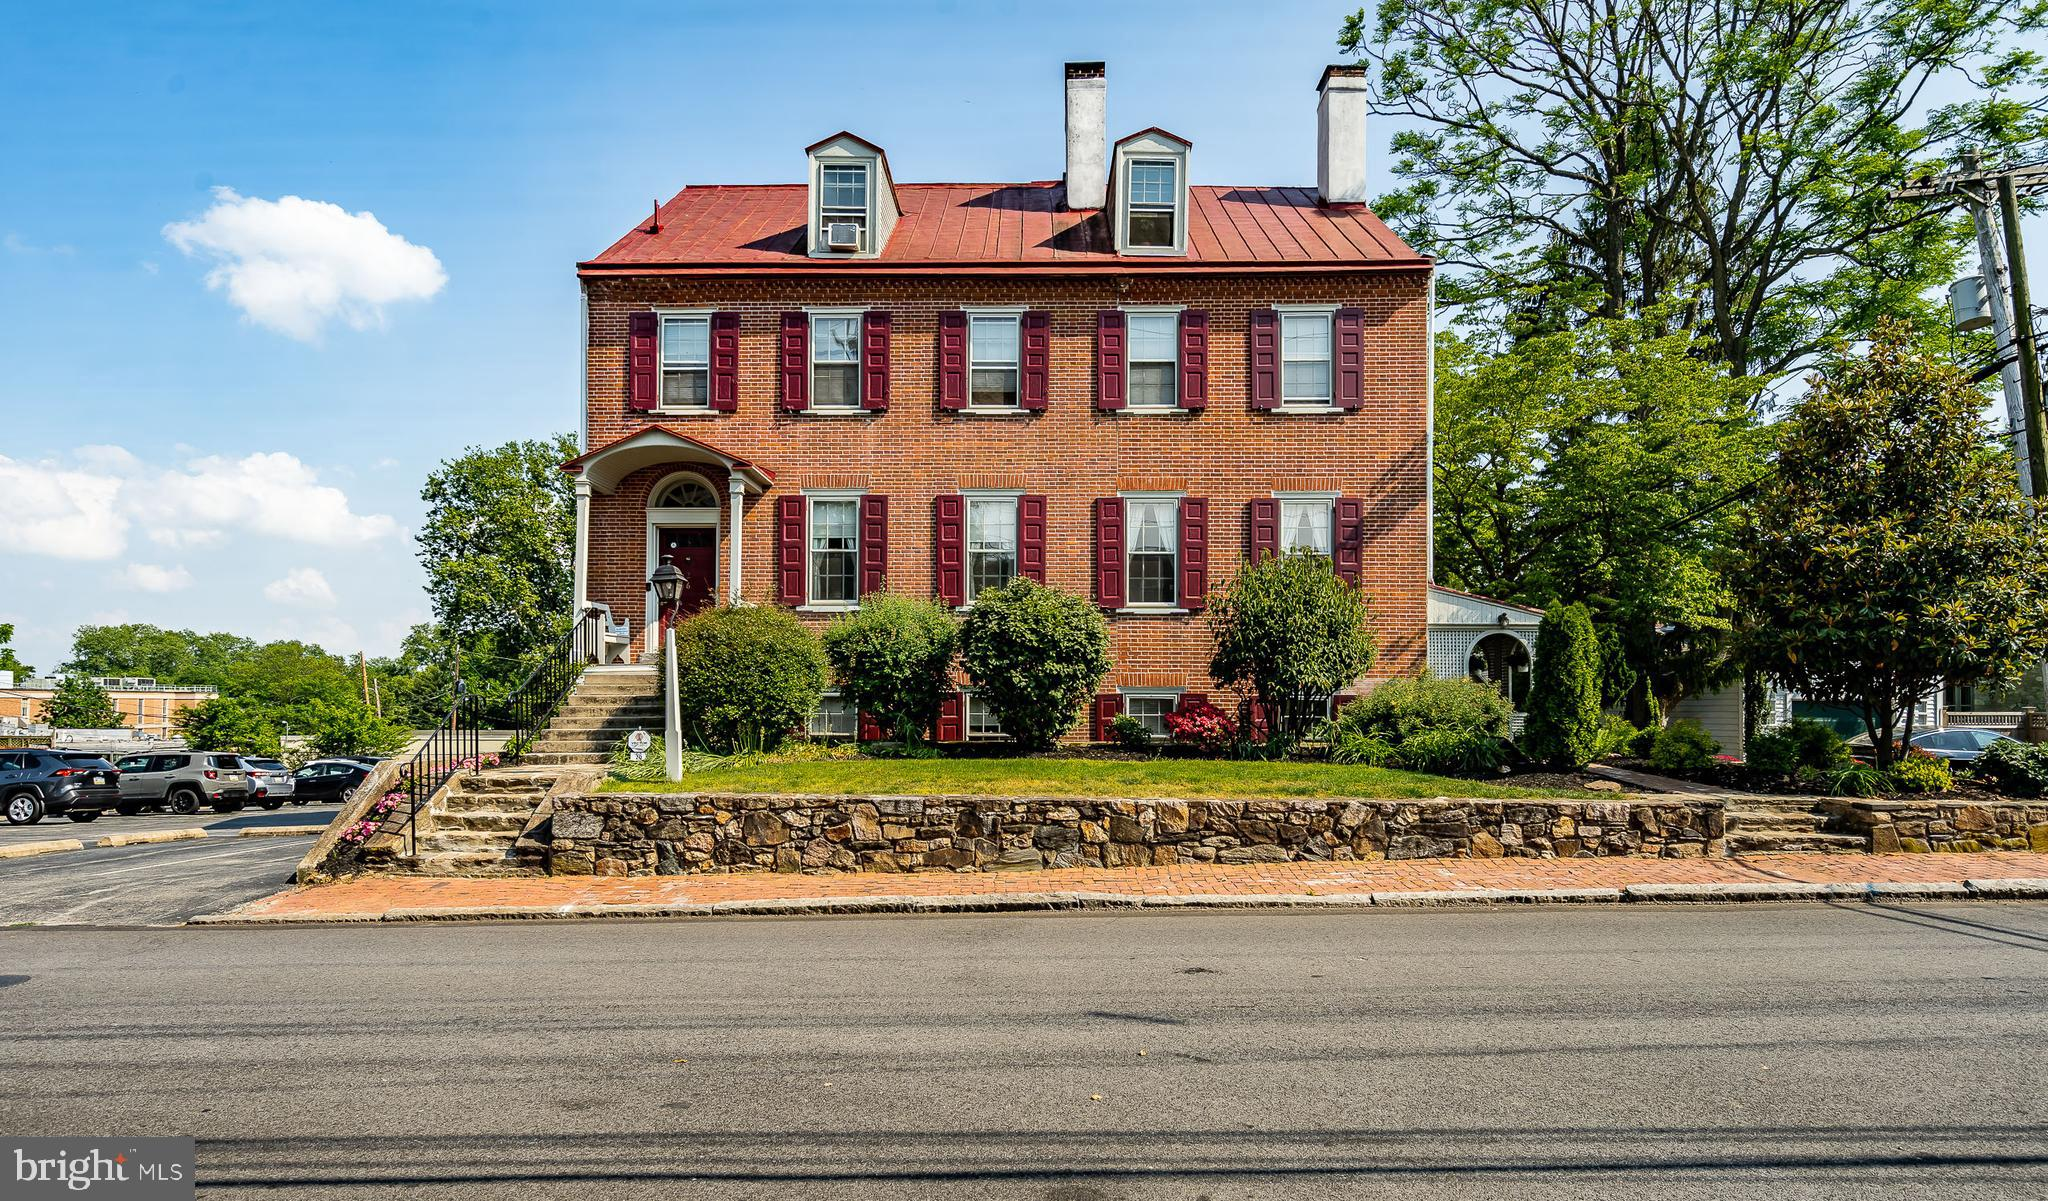 This exceptional residence dates back to 1830. A one of  kind single family residence occupied on the main level by Sellers. Spectacular and high end improvements are enjoyed by the owners with the luxury of collecting addition rent from 2- 3 bedroom 1- 2 bedroom apartments. Also with a private entrance is a one bedroom in-law suite. The original charm is both inside and outside. The rear yard is spacious and includes lush landscaping. Rarely found in the middle of the Borough. A unique 2 car detached garage is included of a dismantled barn. It is prime location walking distance to all Borough amenities.